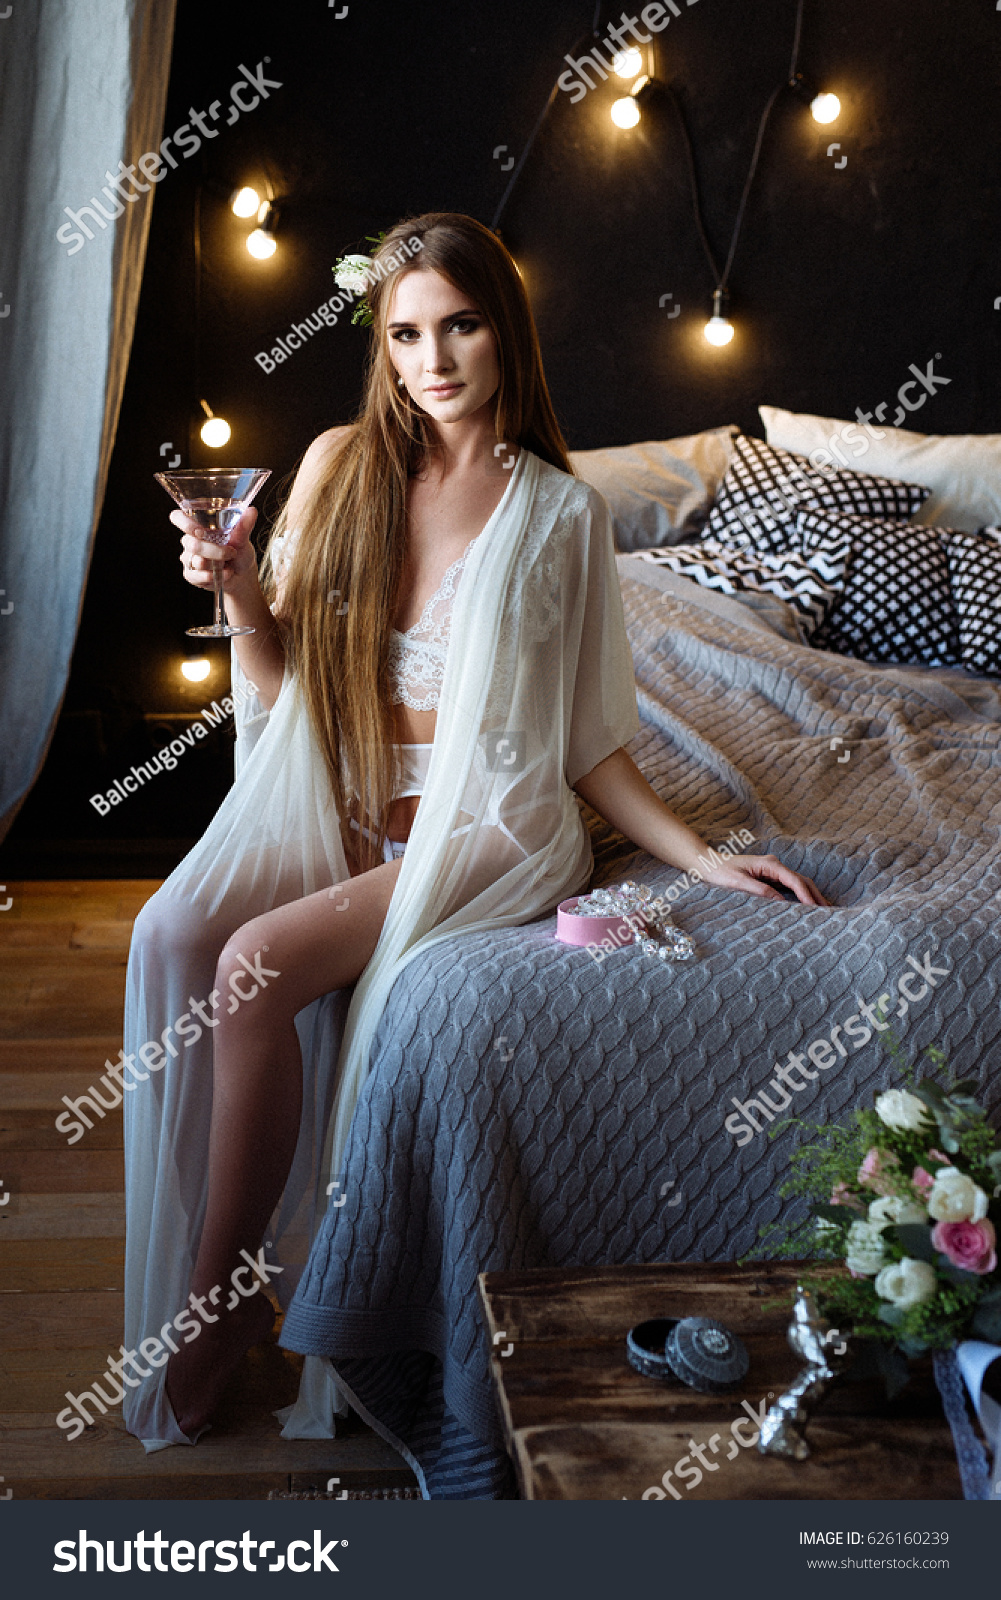 Girl Long White Dressing Gown Sits Stock Photo (Edit Now) 626160239 ...